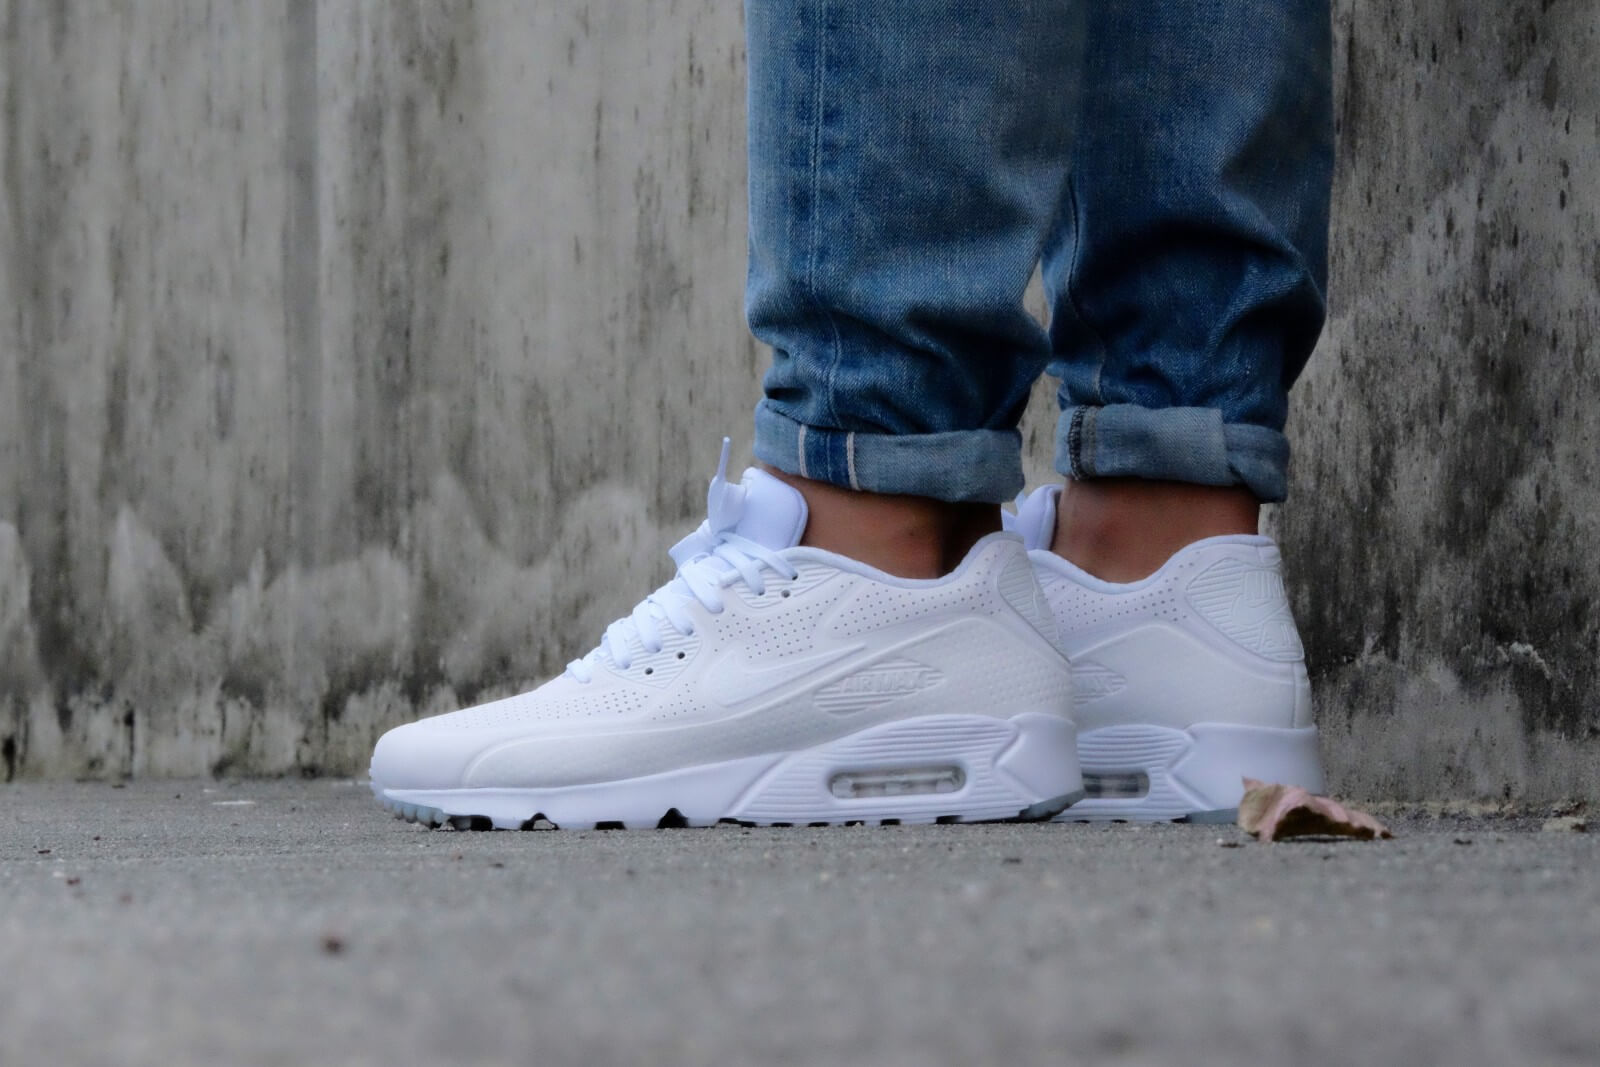 Nike Air Max 1 Ultra Moire   White   Sneakers   705297 111